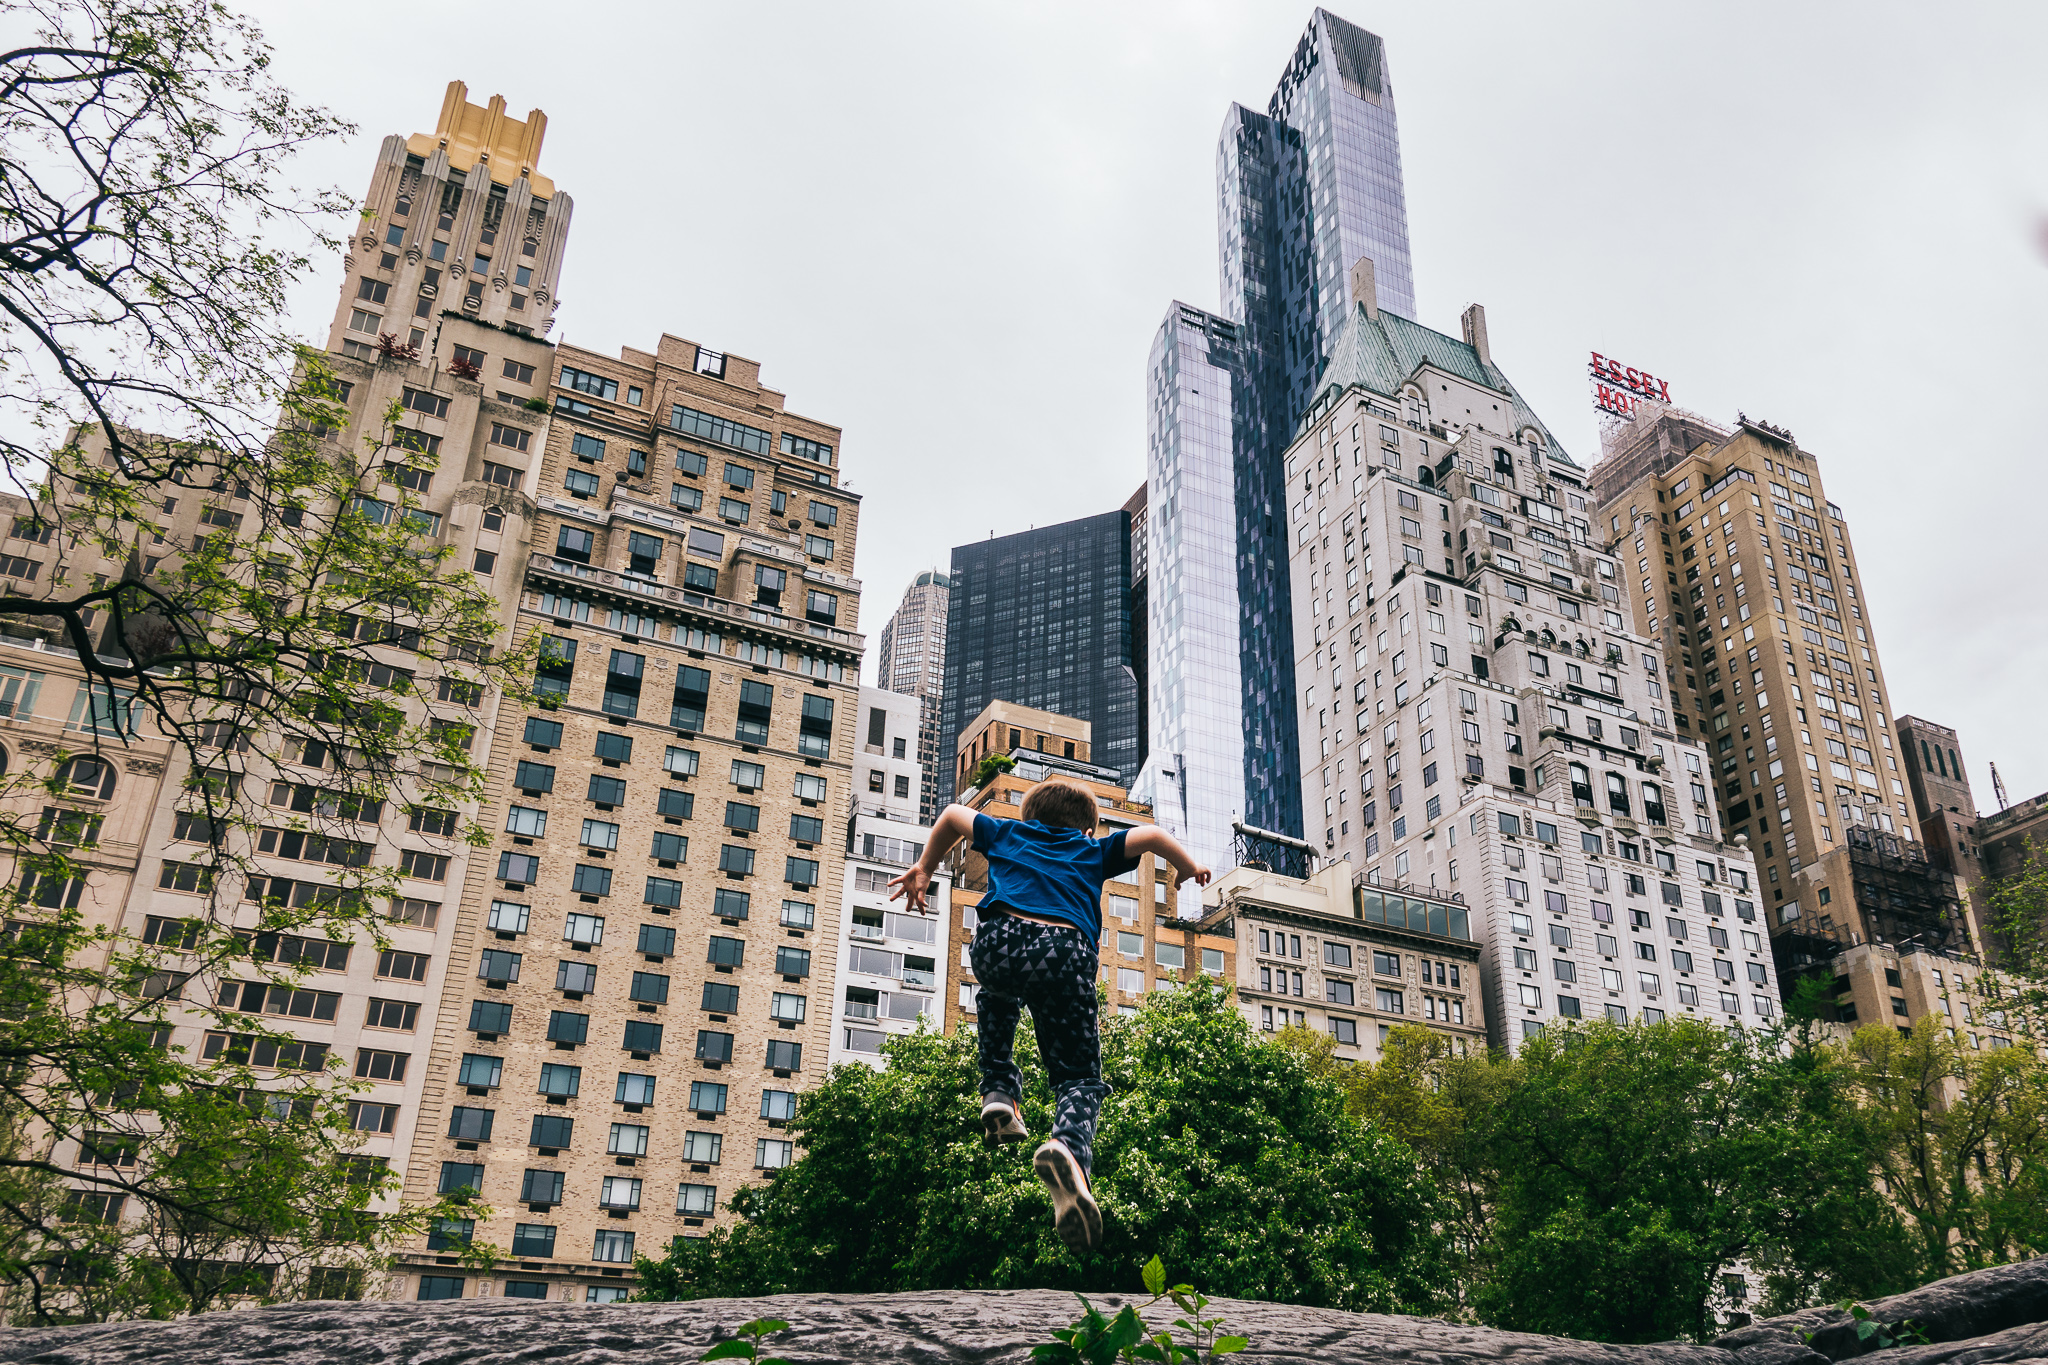 Central Park NYC with Sony RX100V